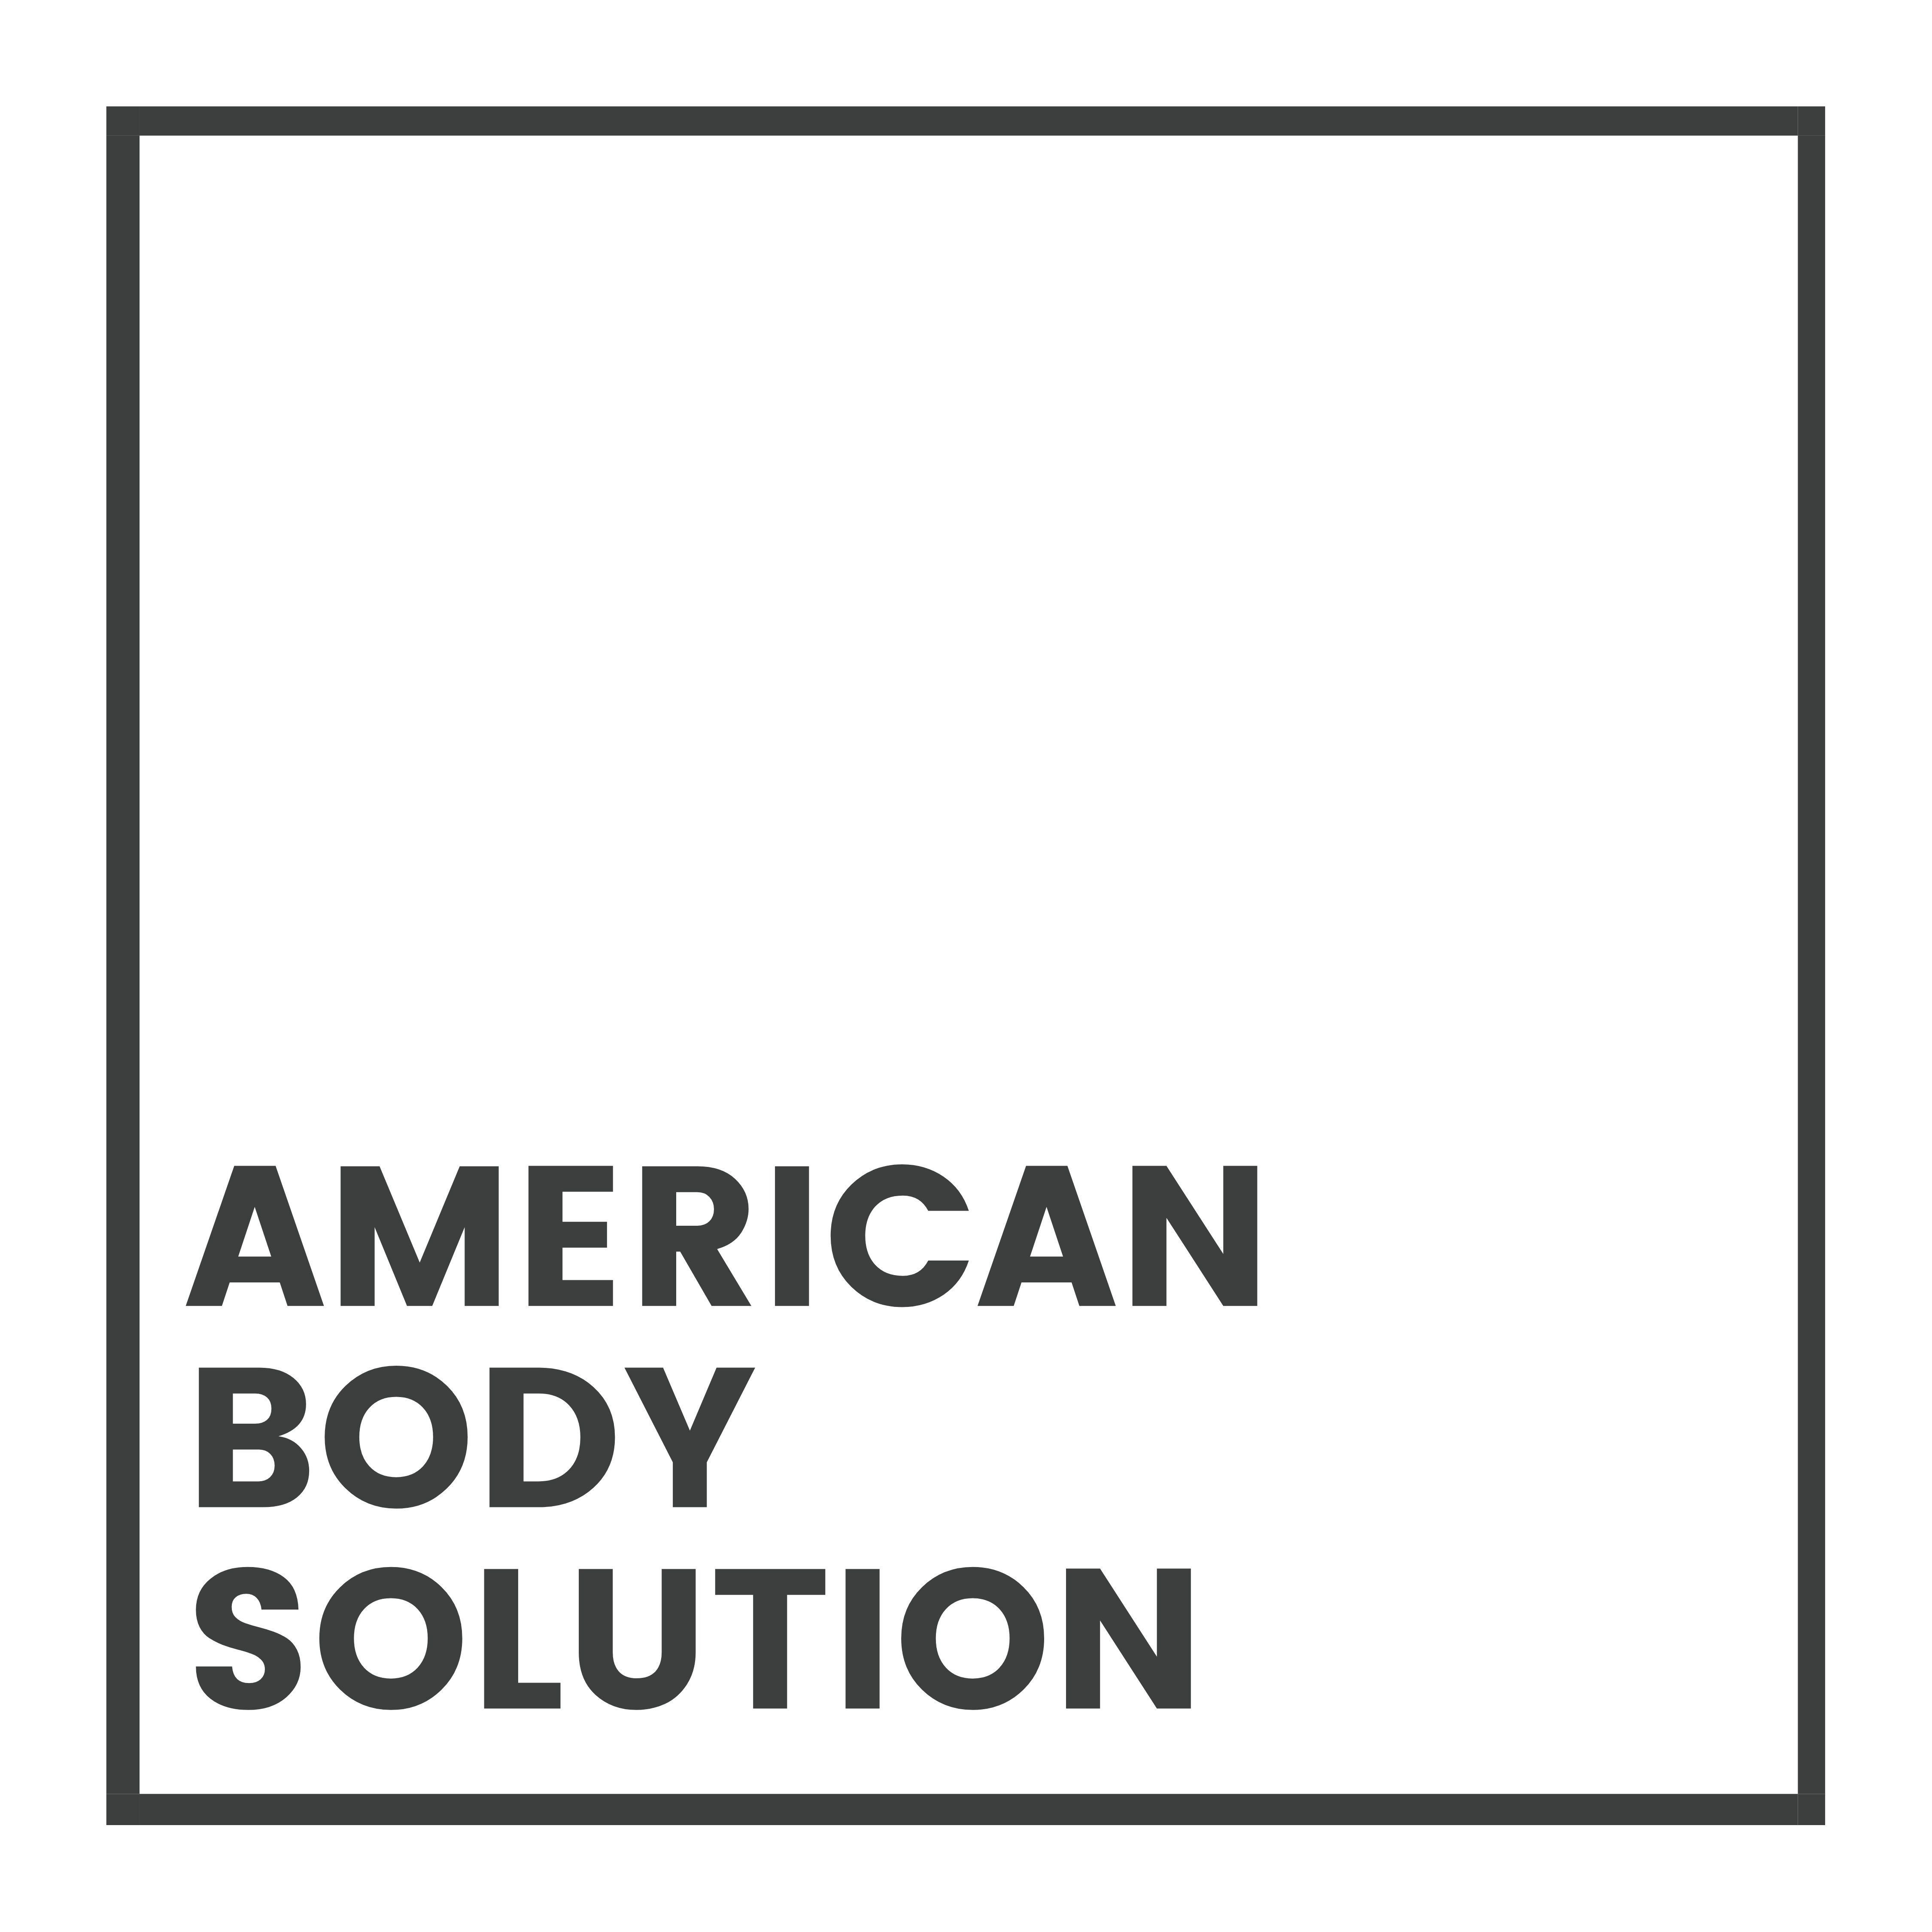 American Body Solution